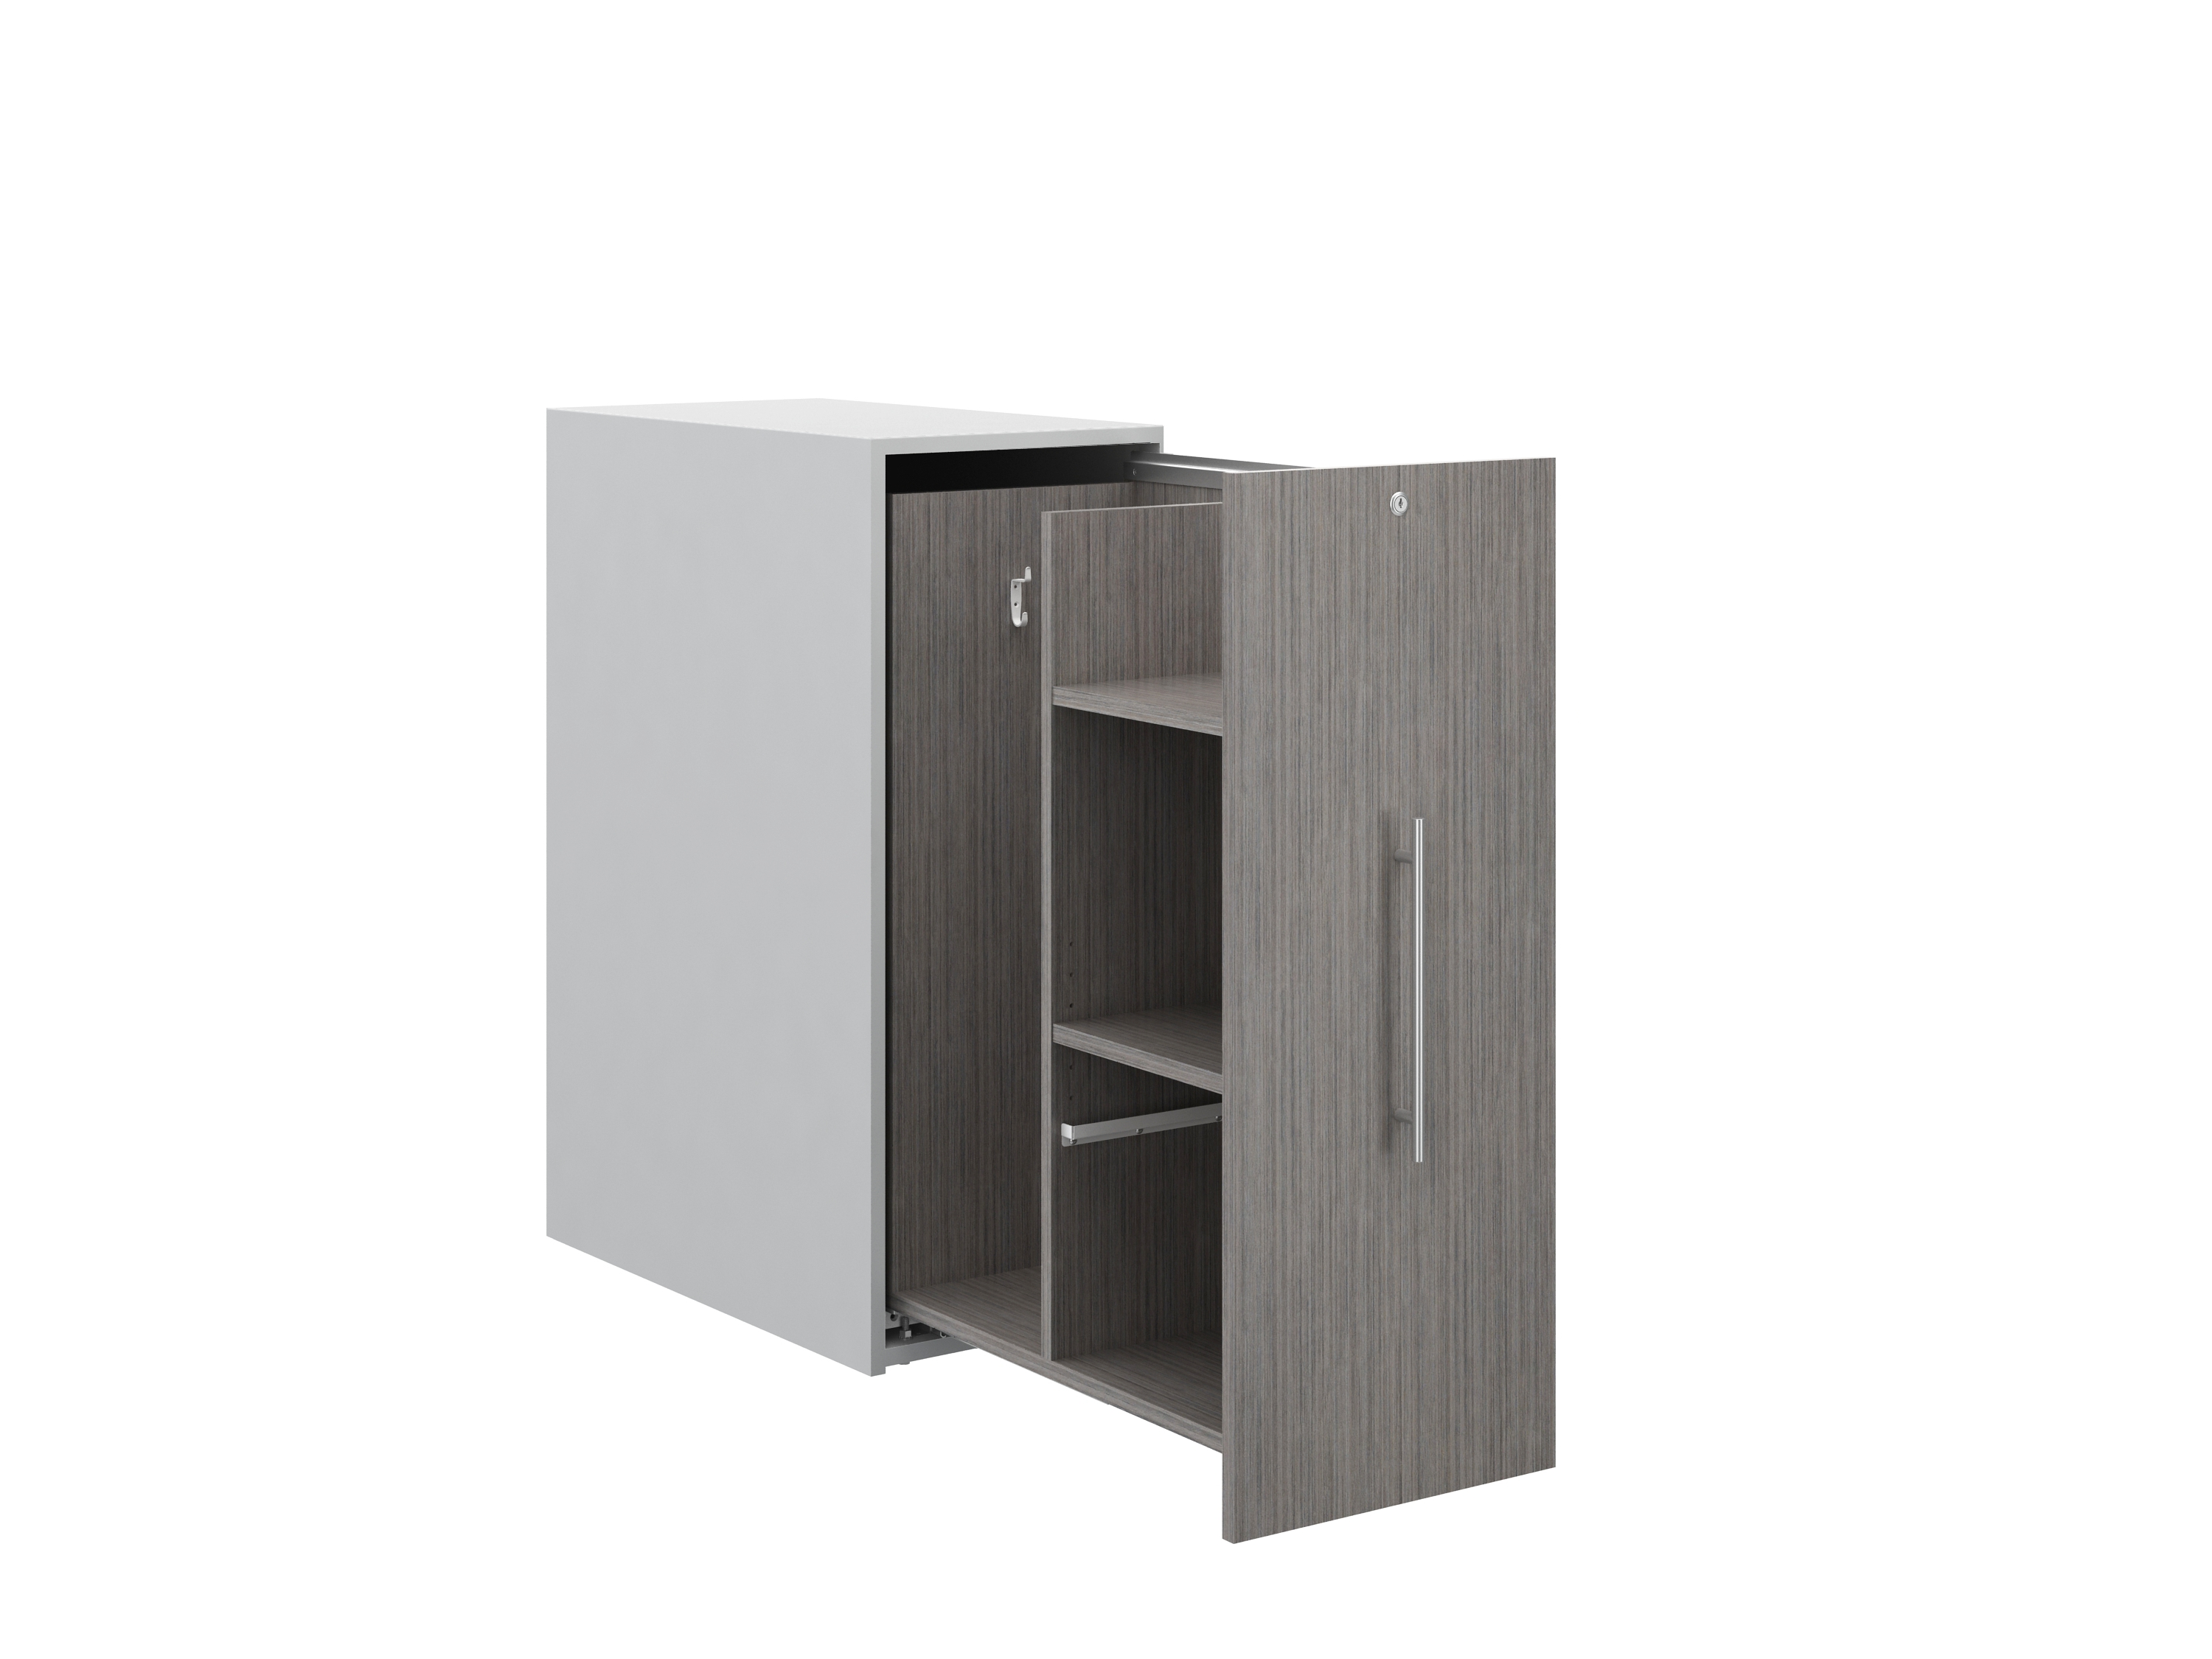 Calibrate 42 inch tall pullout storage